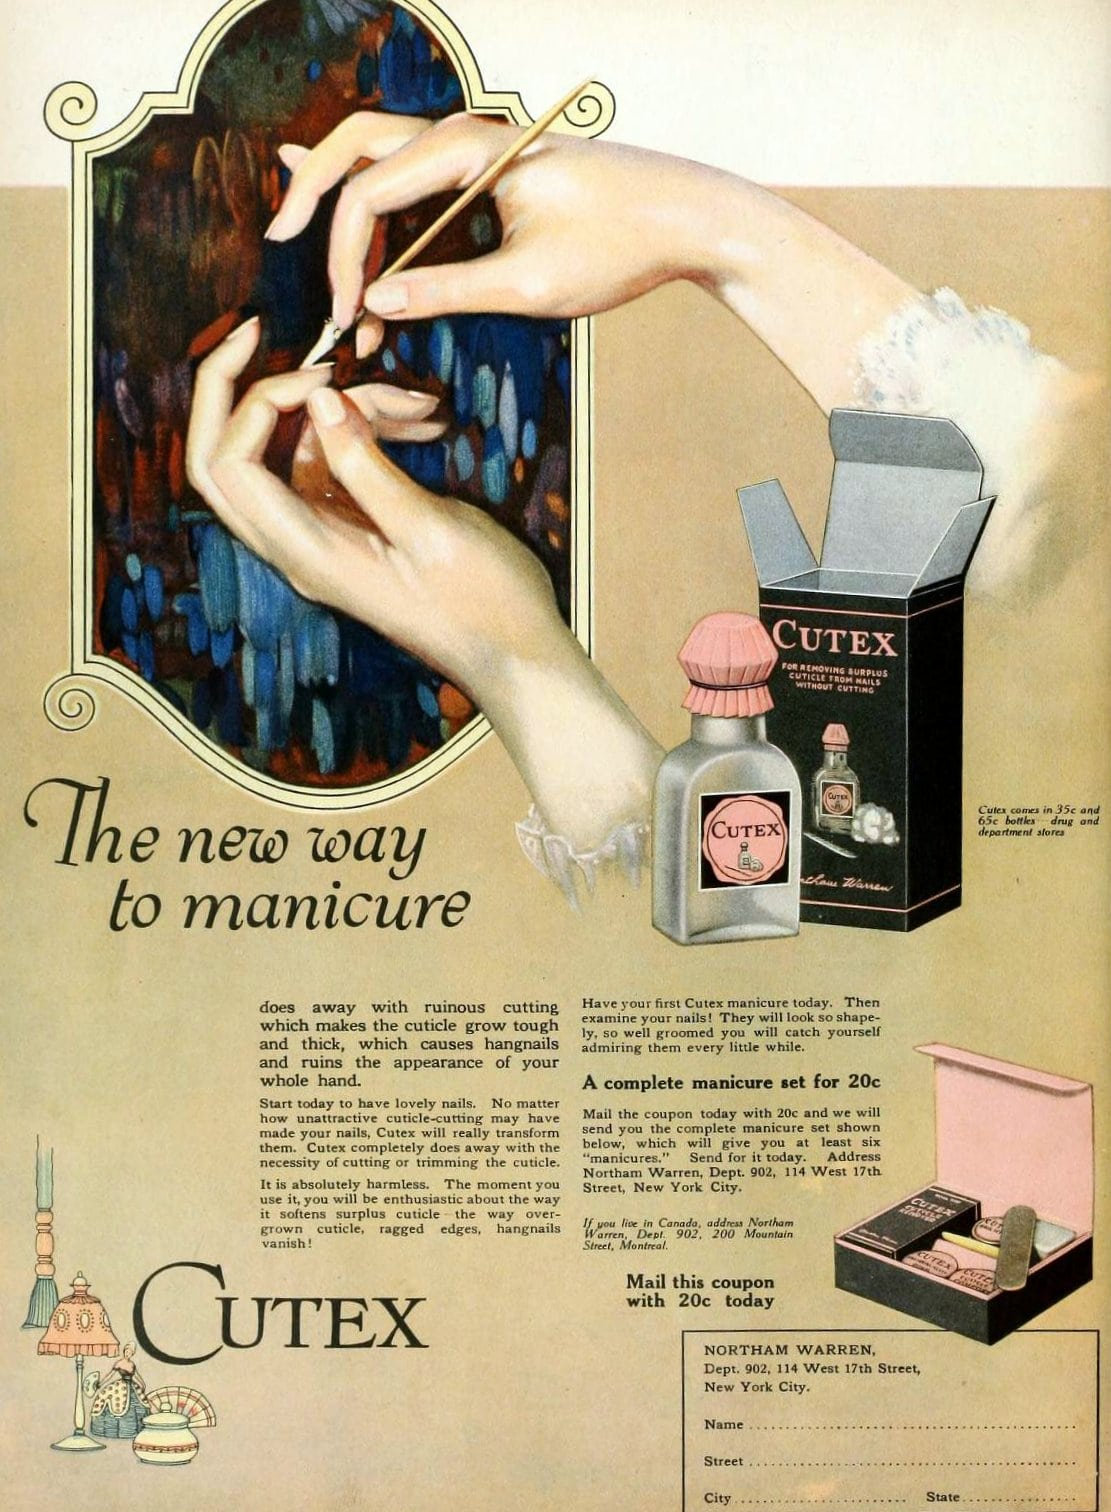 Cutex manicure kits from 1920